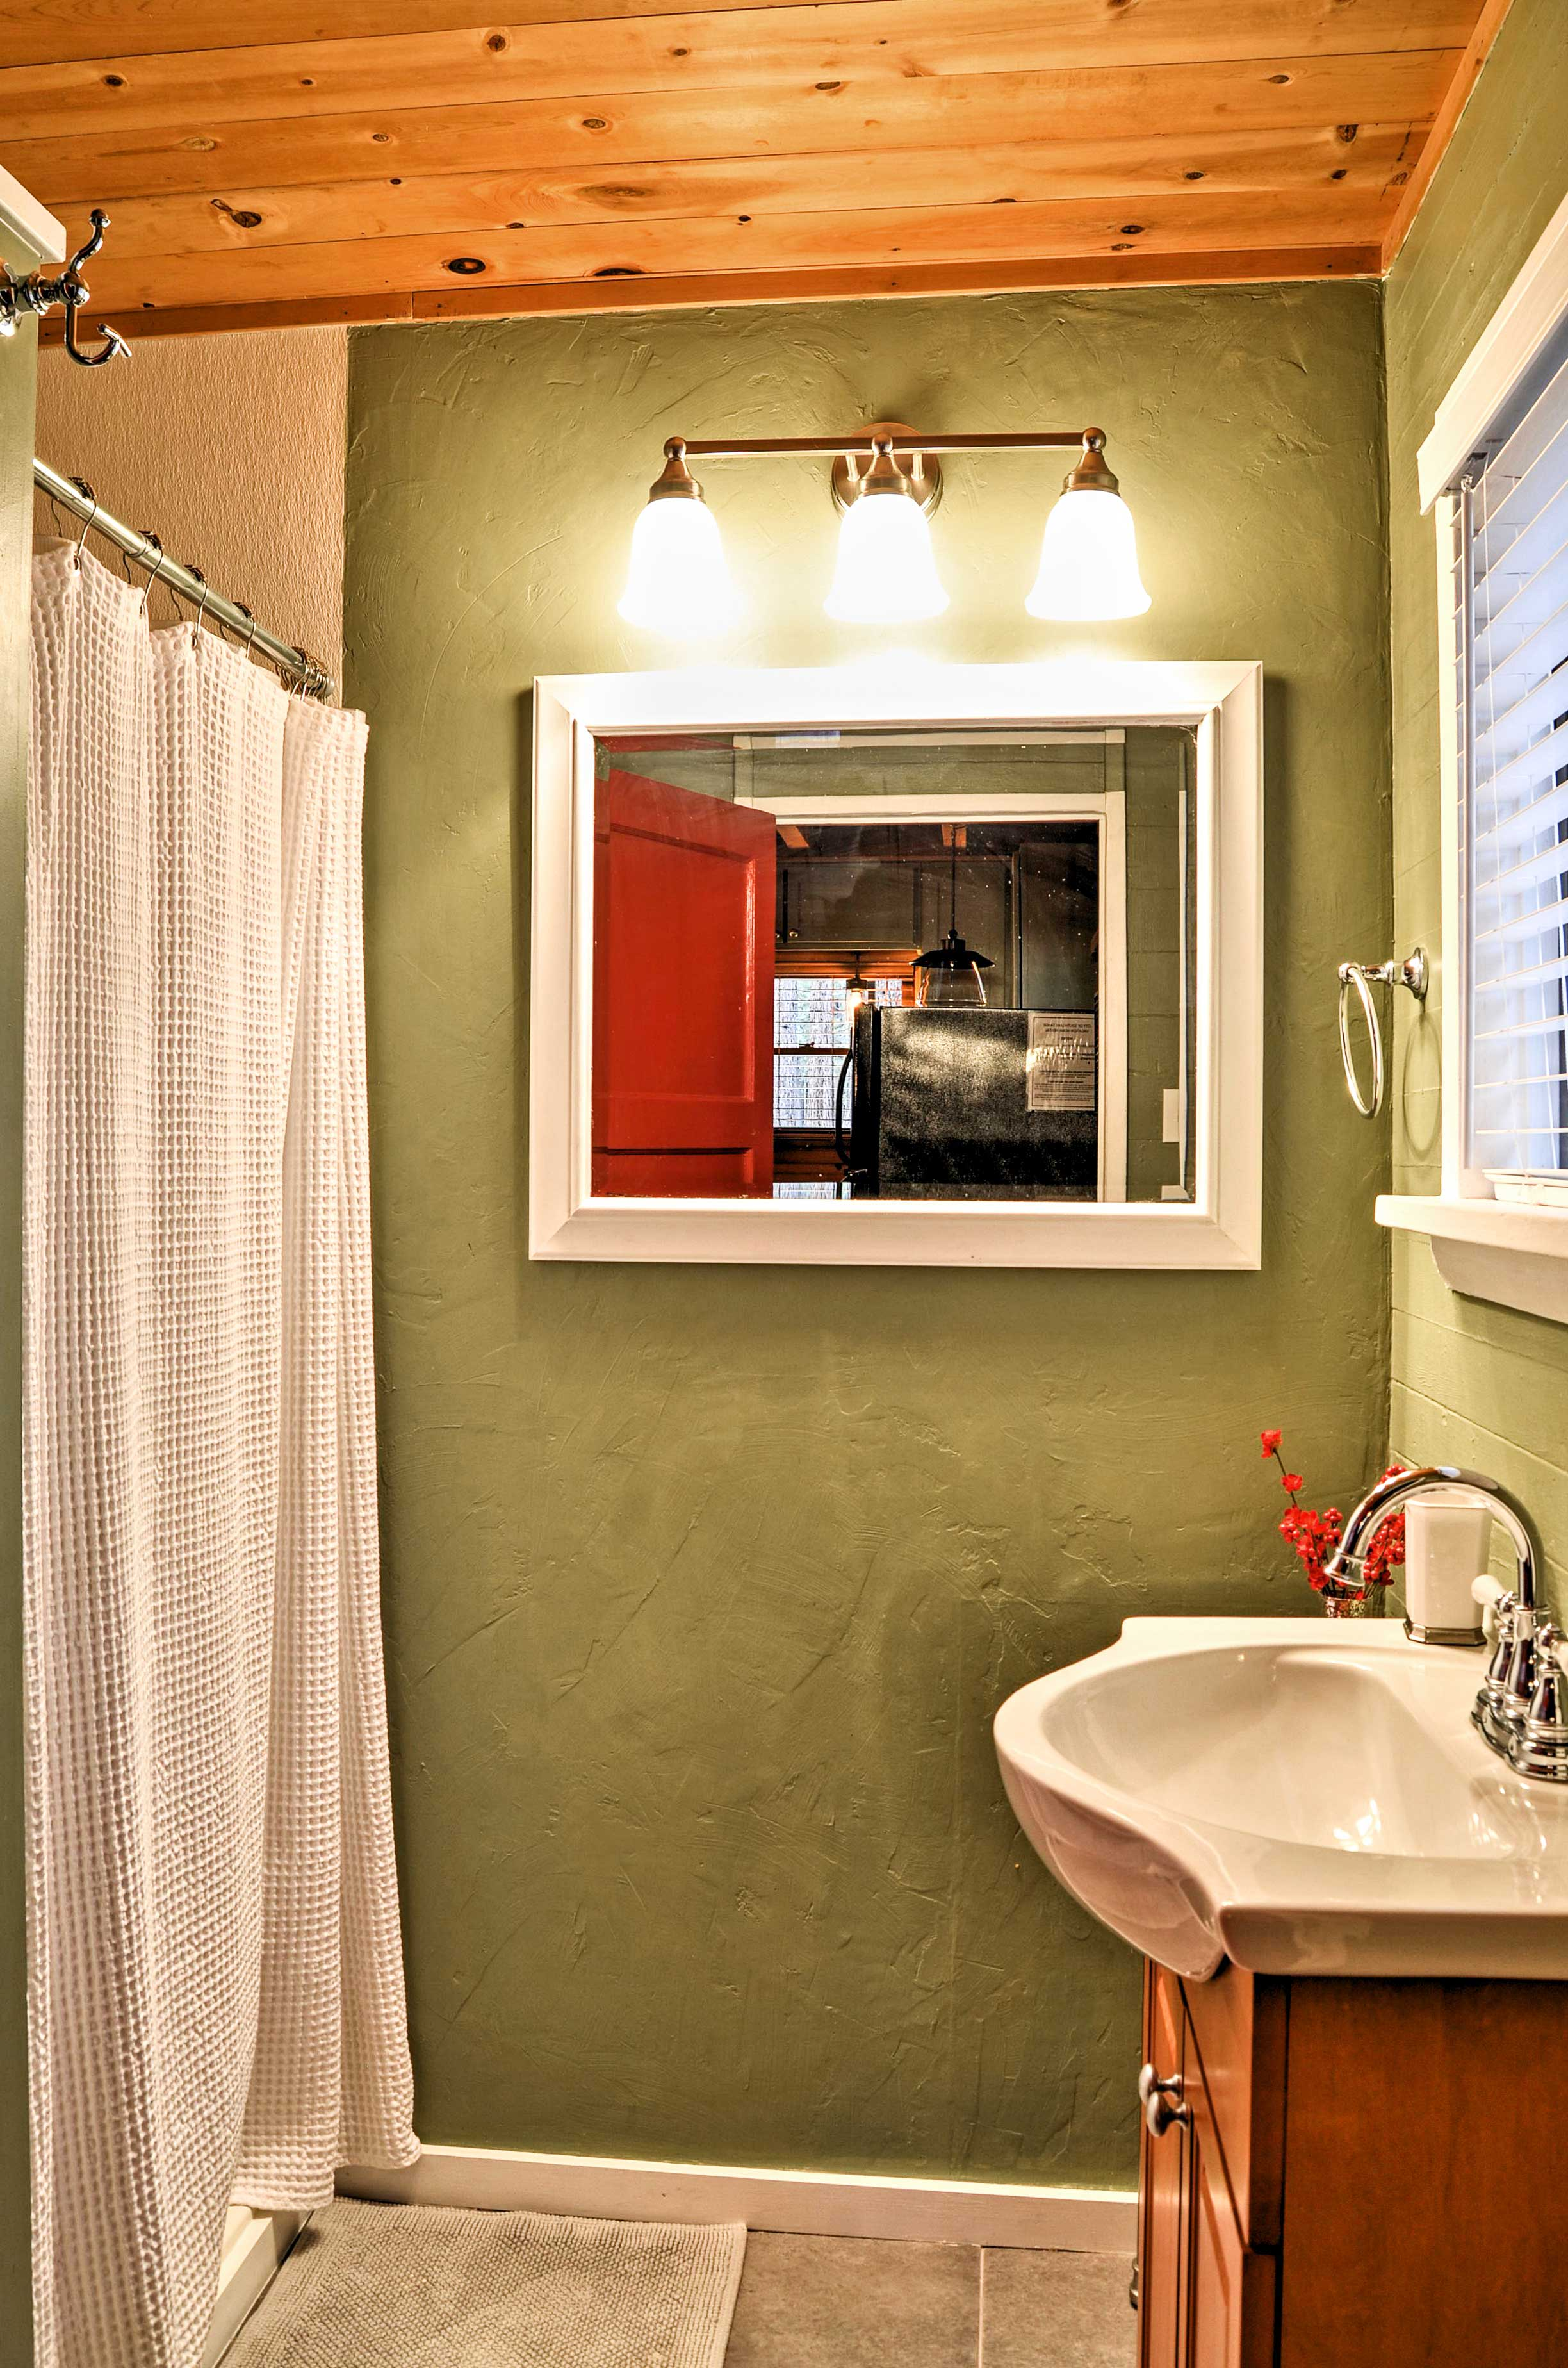 The bathroom hosts a walk-in shower.